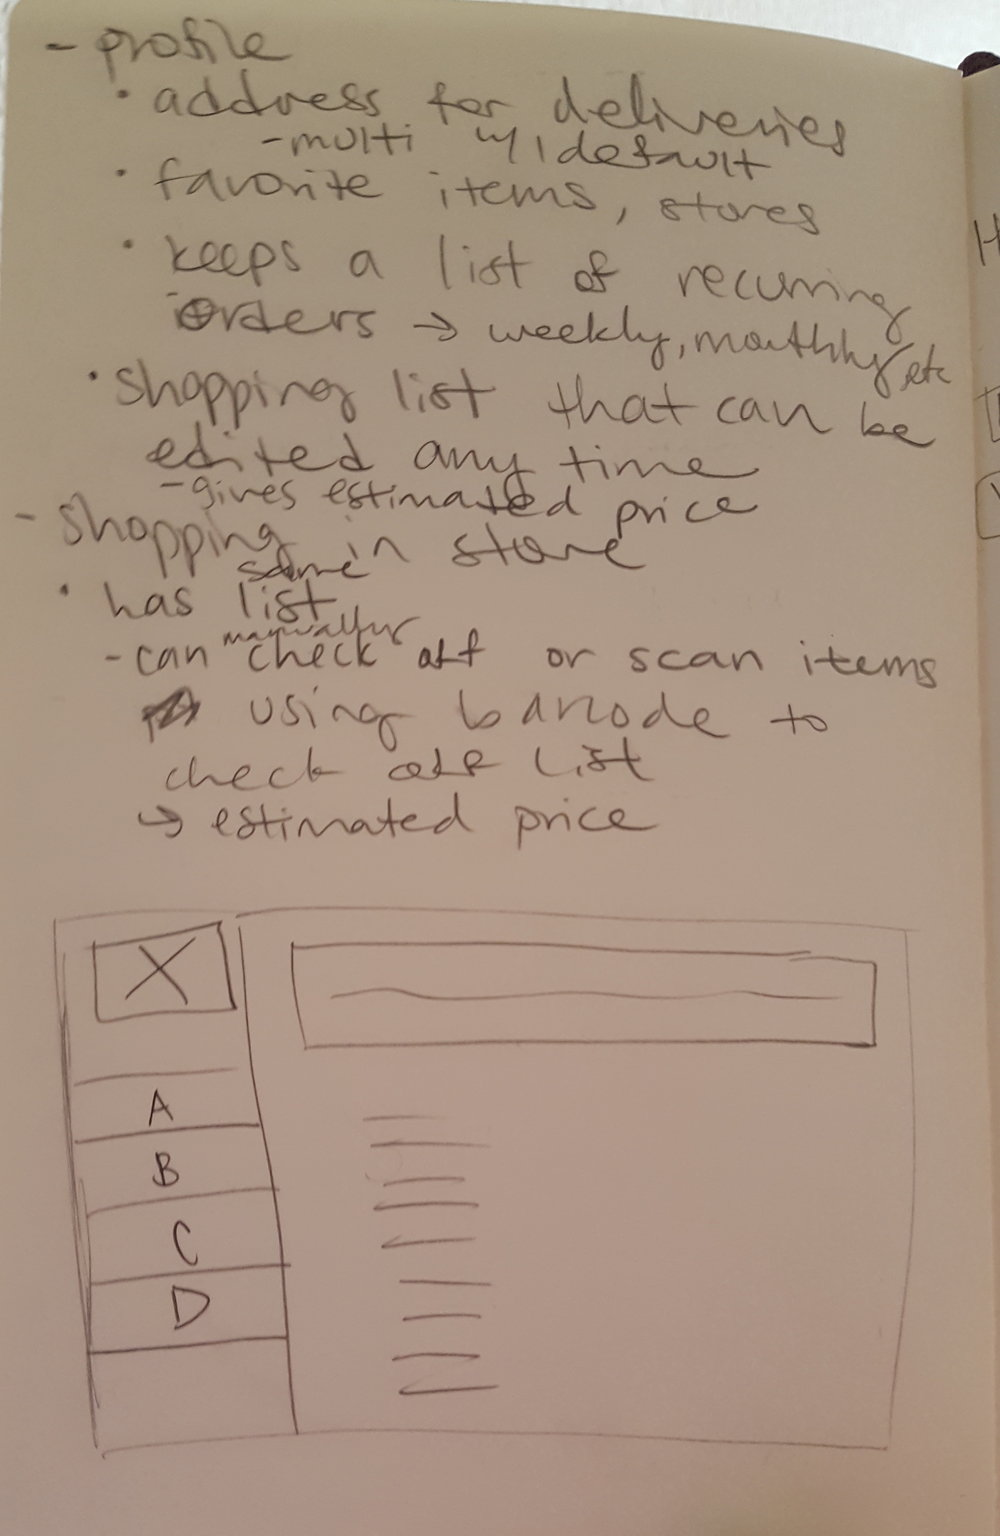 grocery shopping app wireframe prototype amy tang